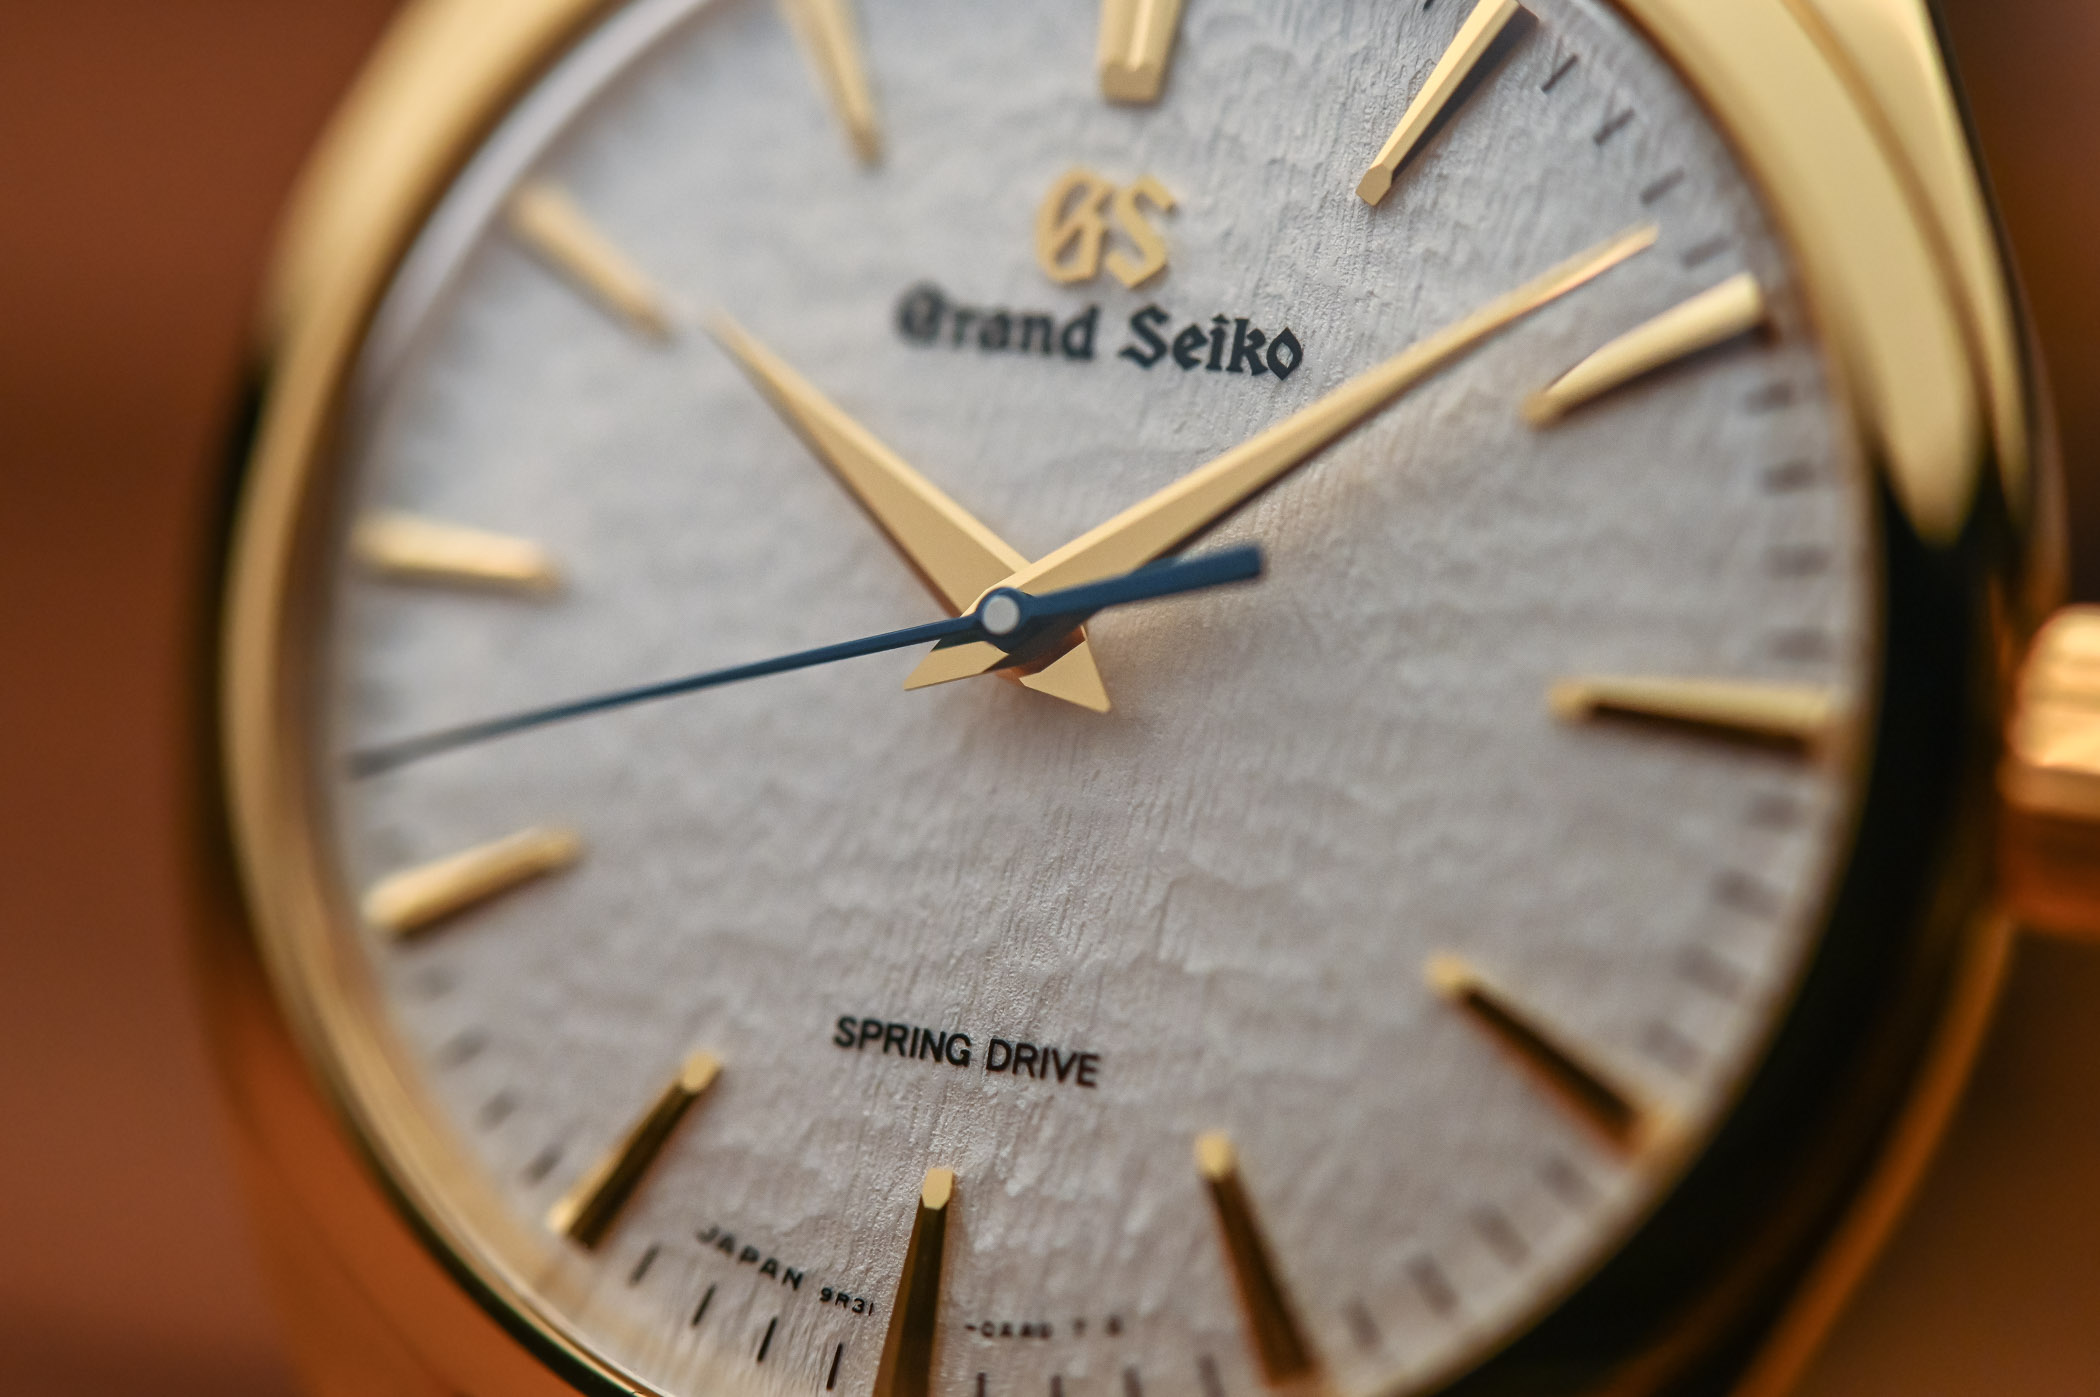 Grand Seiko Hand-Wound Spring Drive Collection - SBGY002 SBGY003 SBGZ002 SBGZ003 - 3